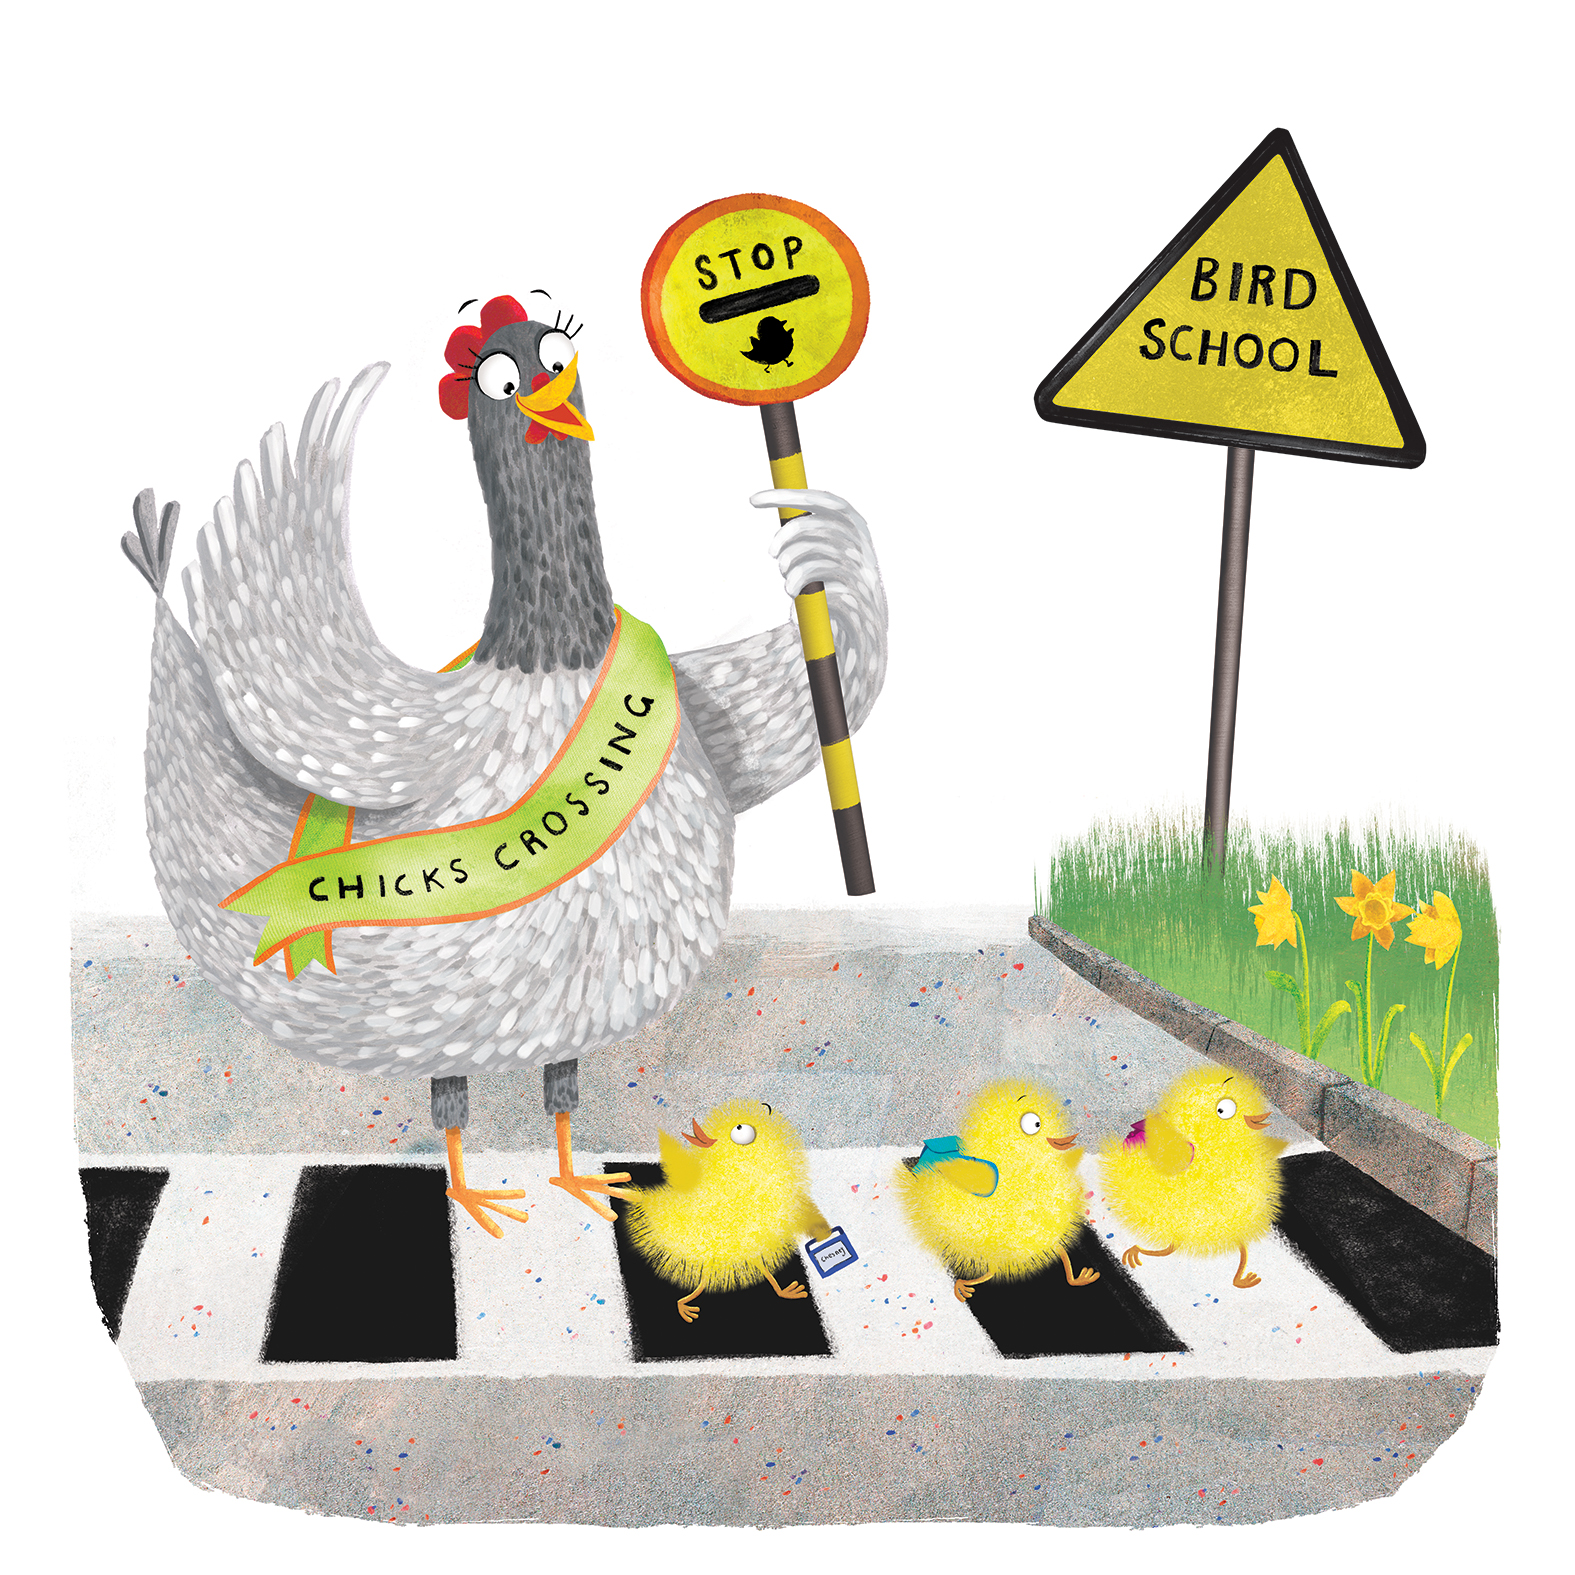 chicks_crossing_road